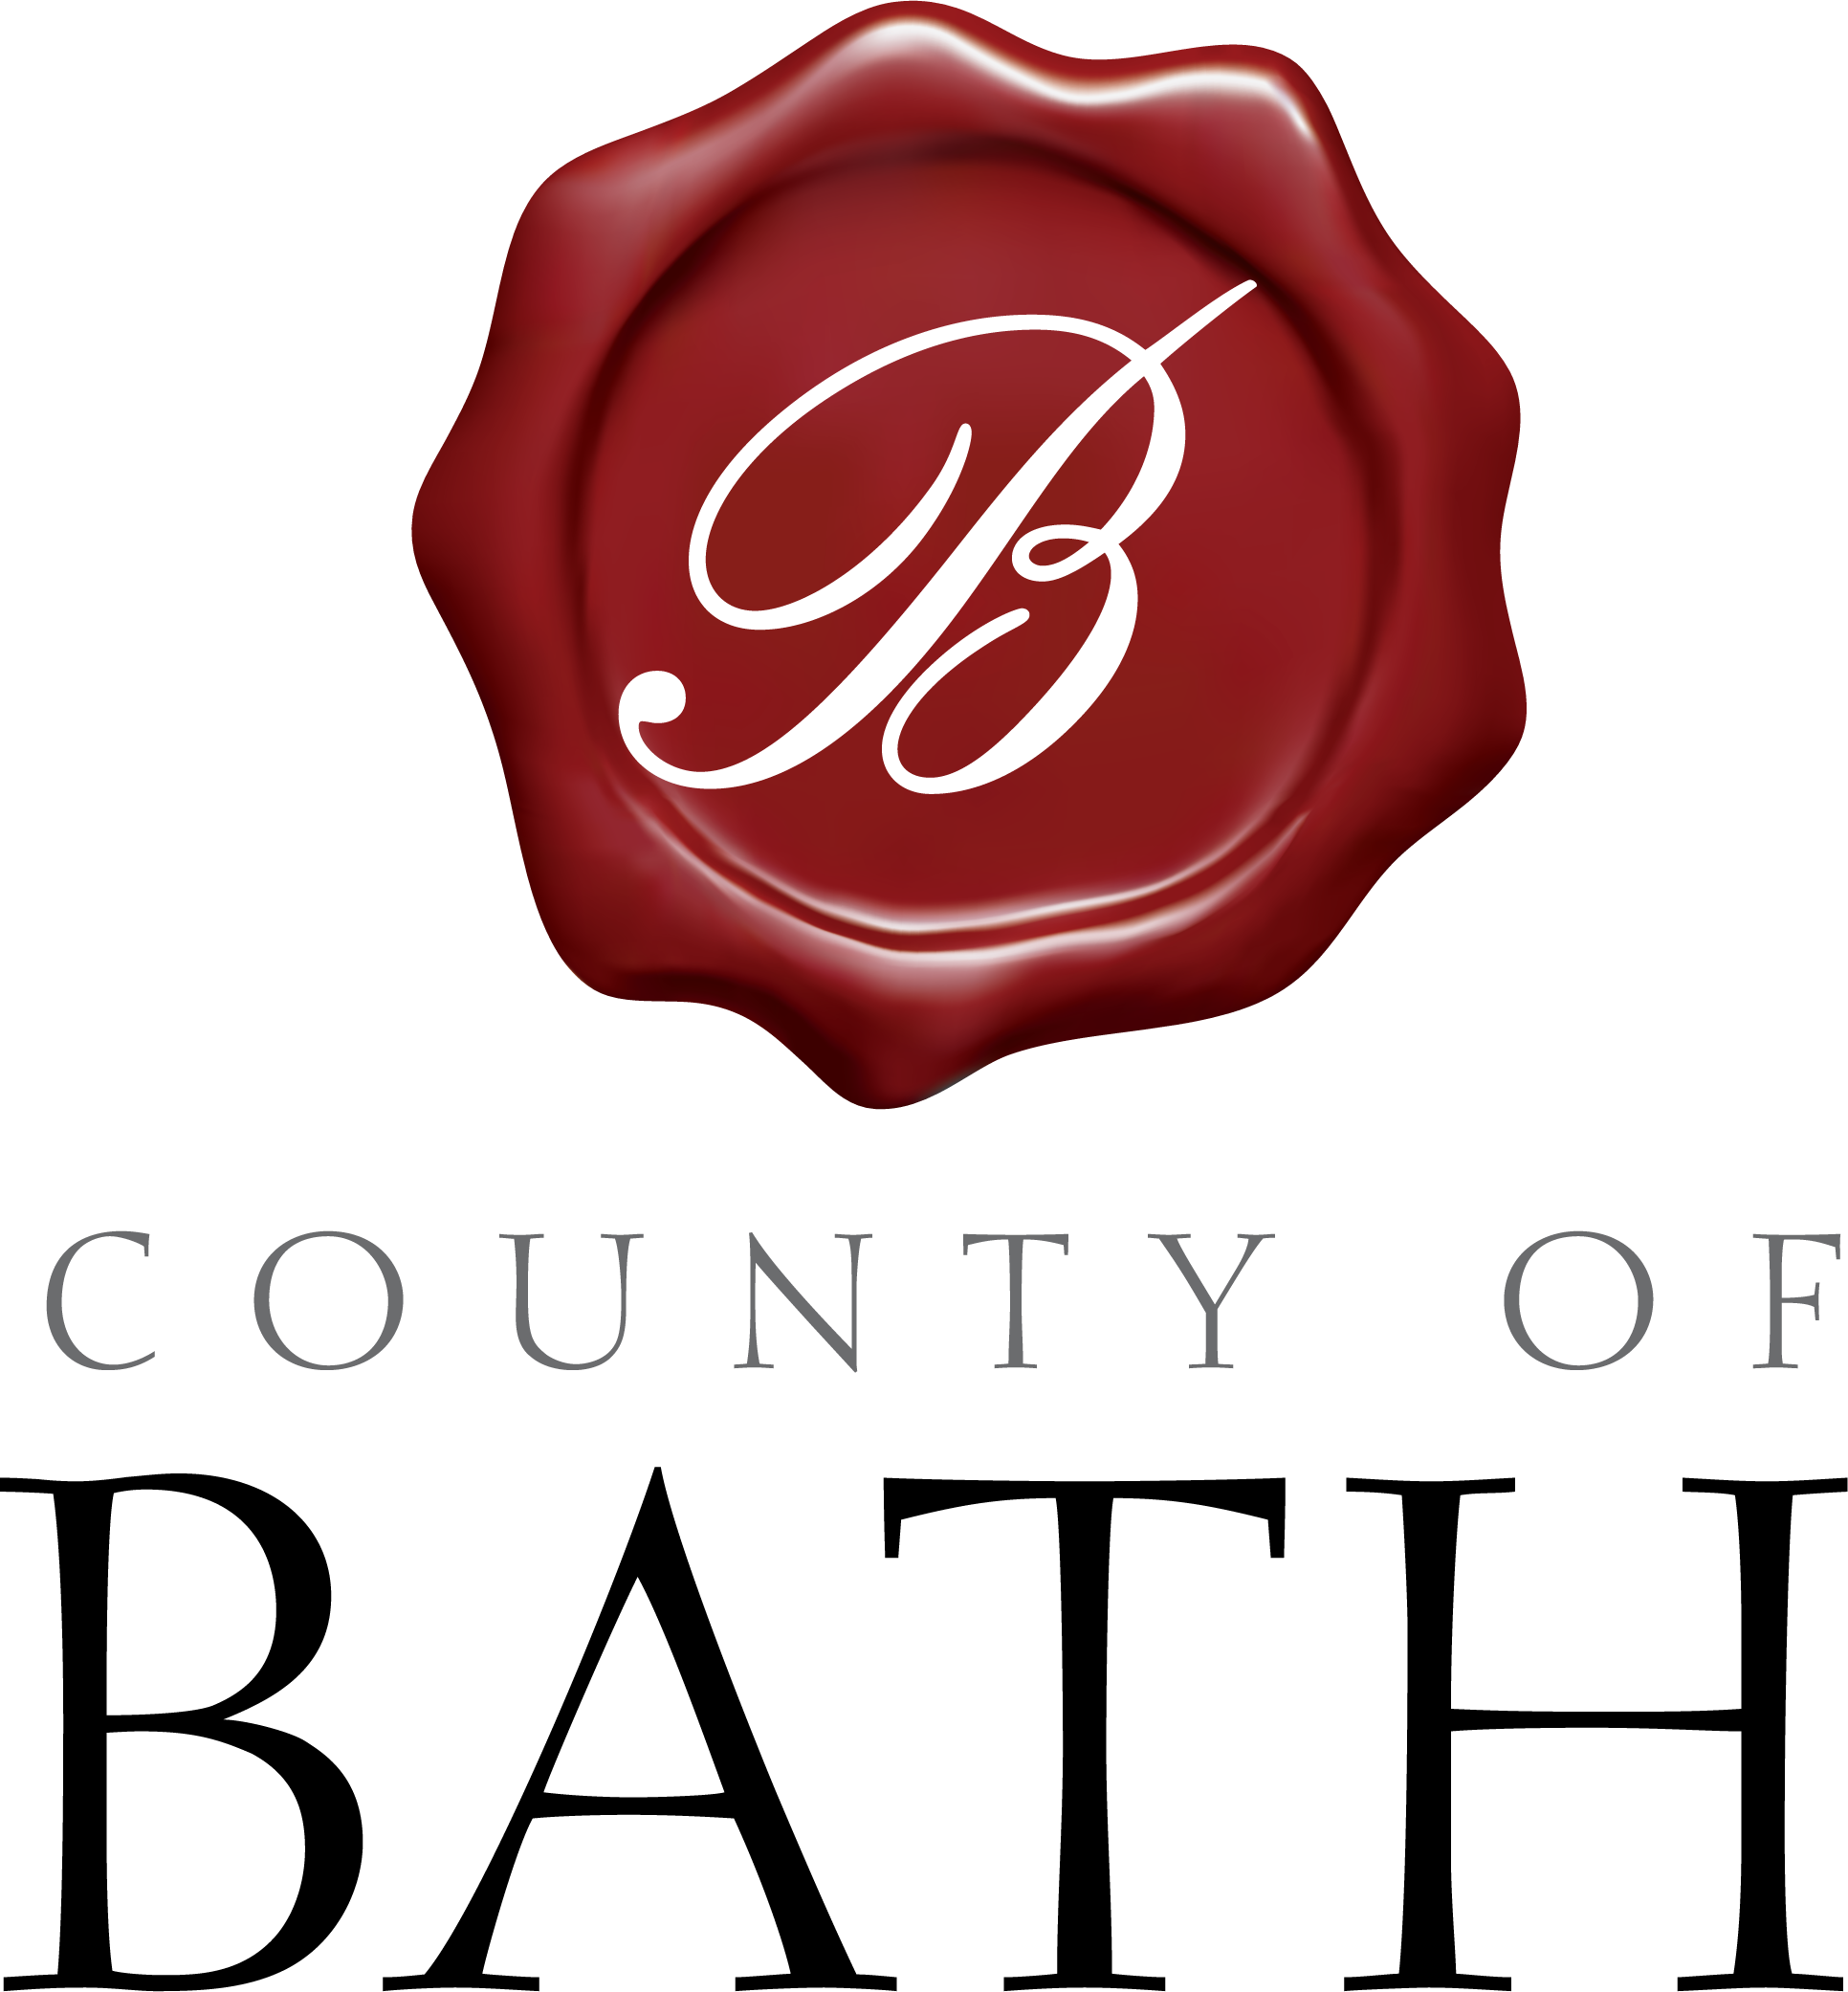 County of Bath logo